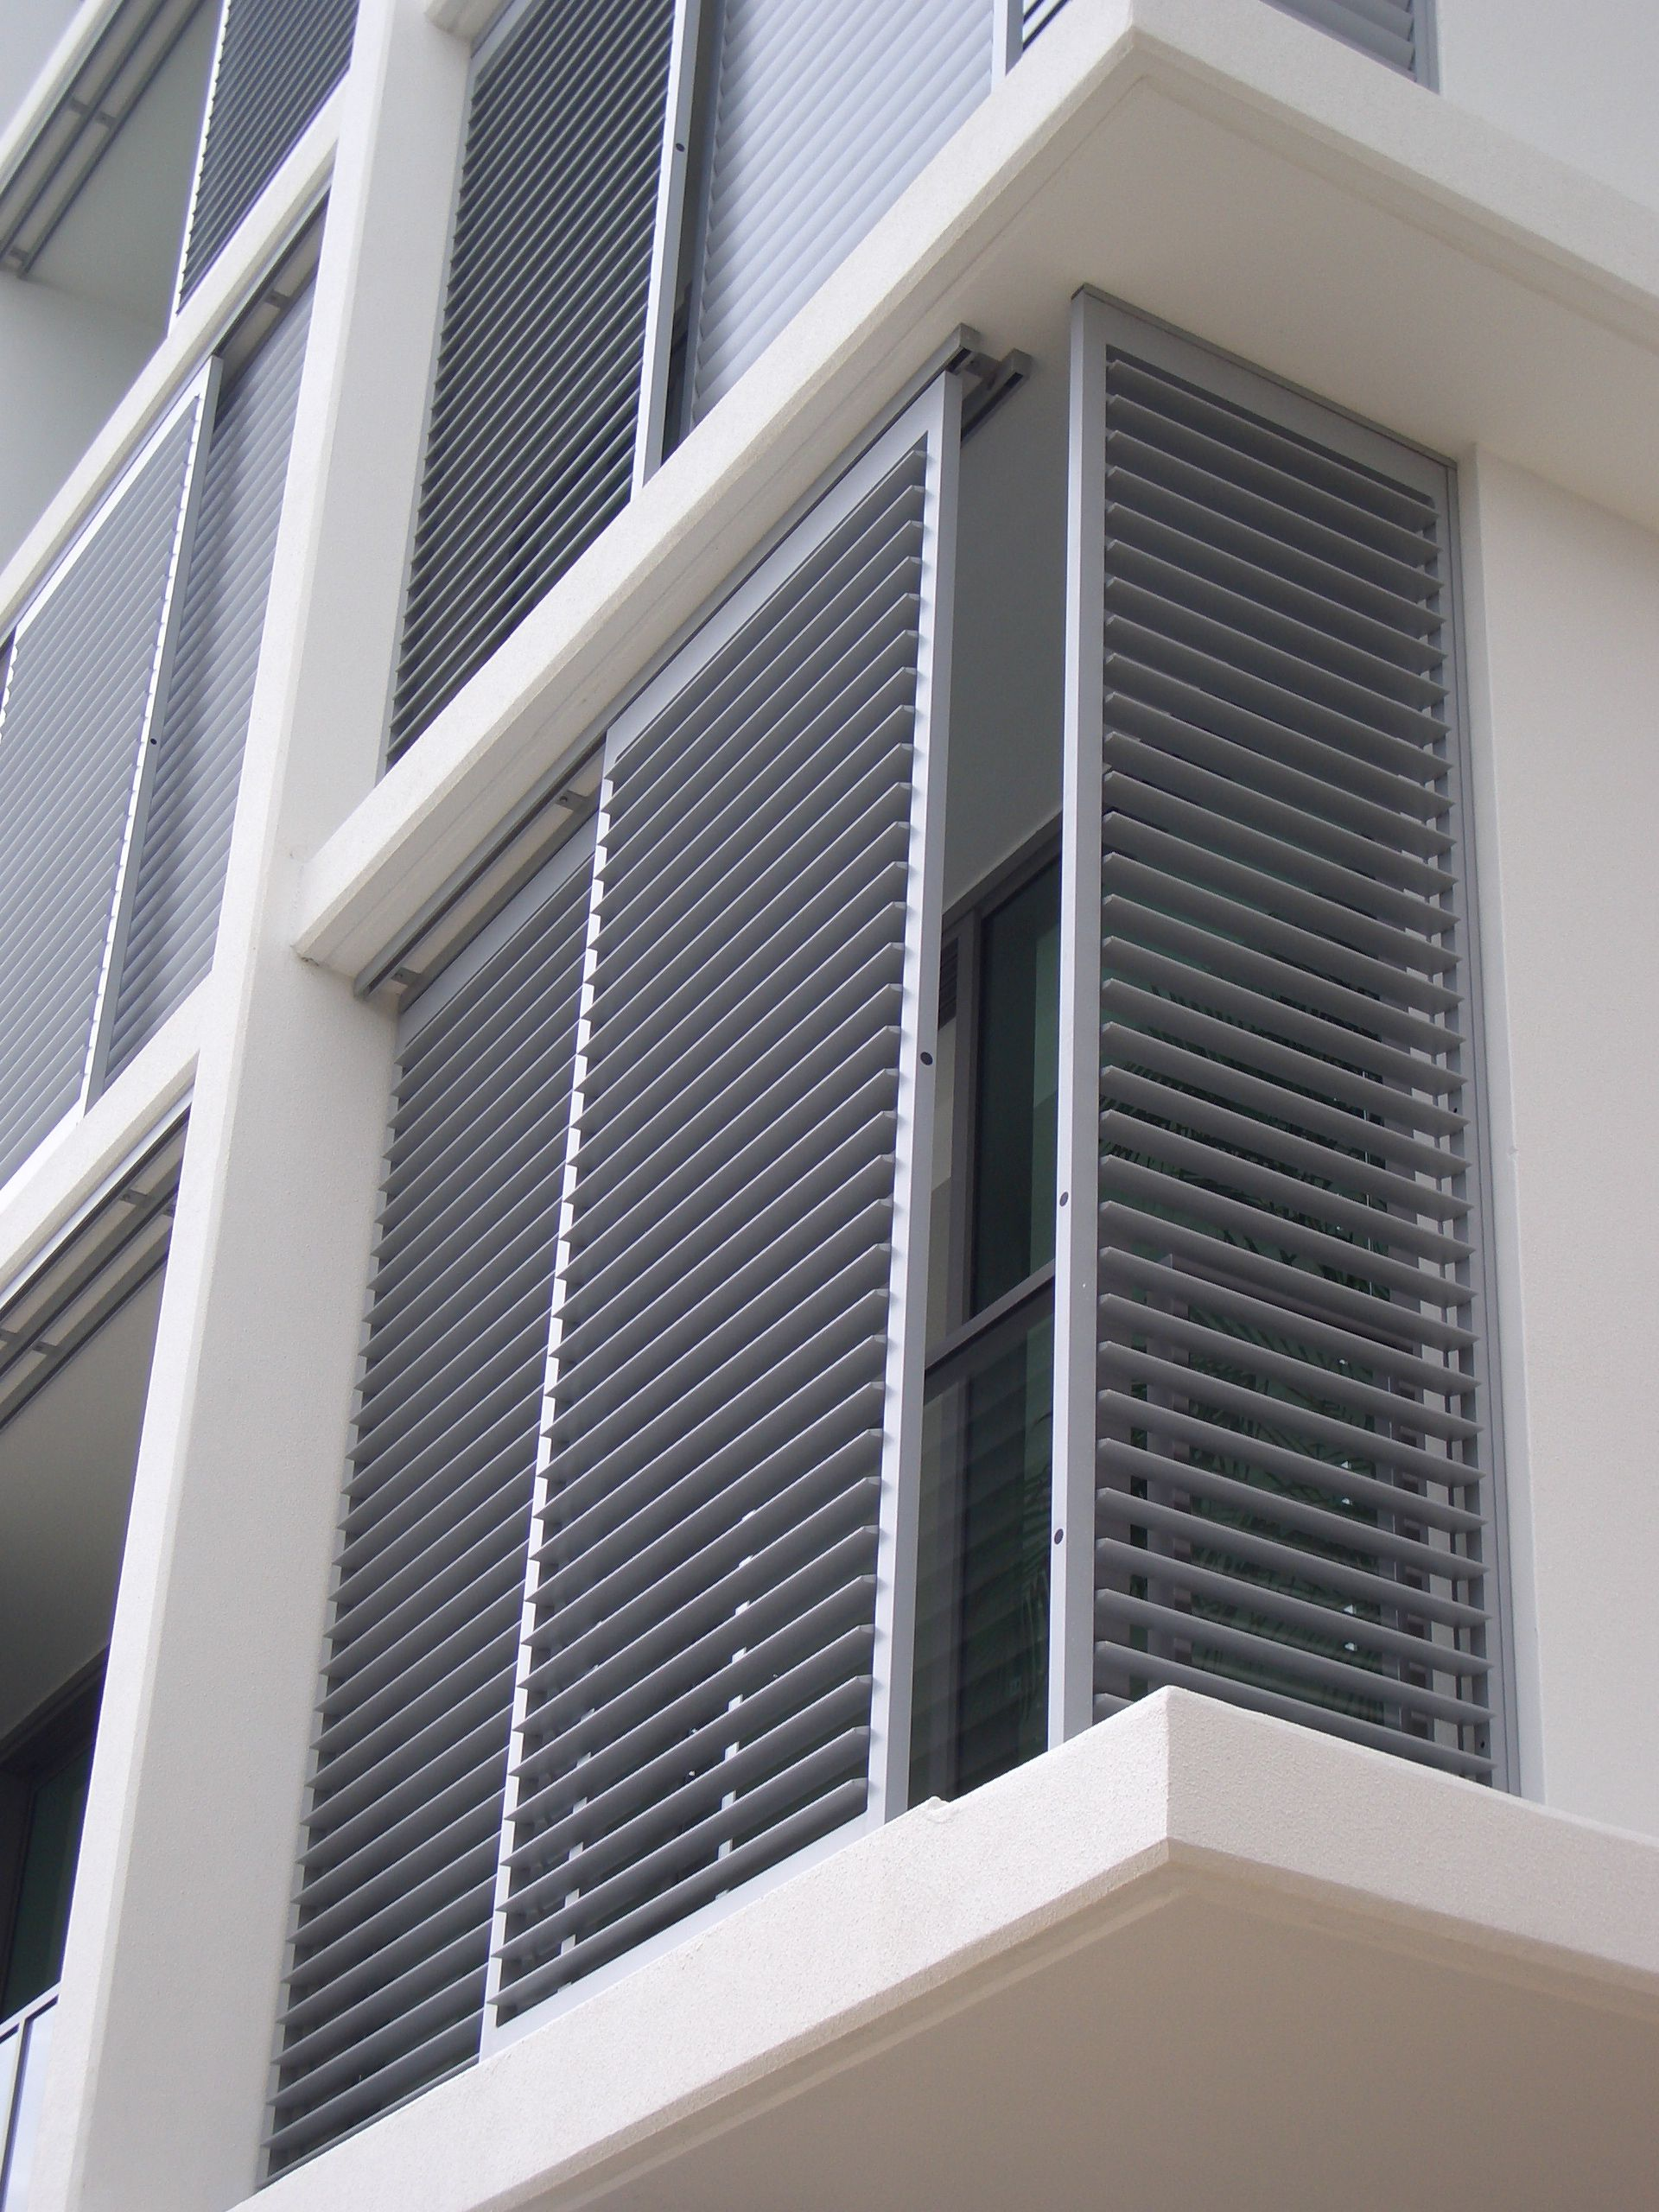 Exterior Shutter Enclosures The Shade Shop Shutters